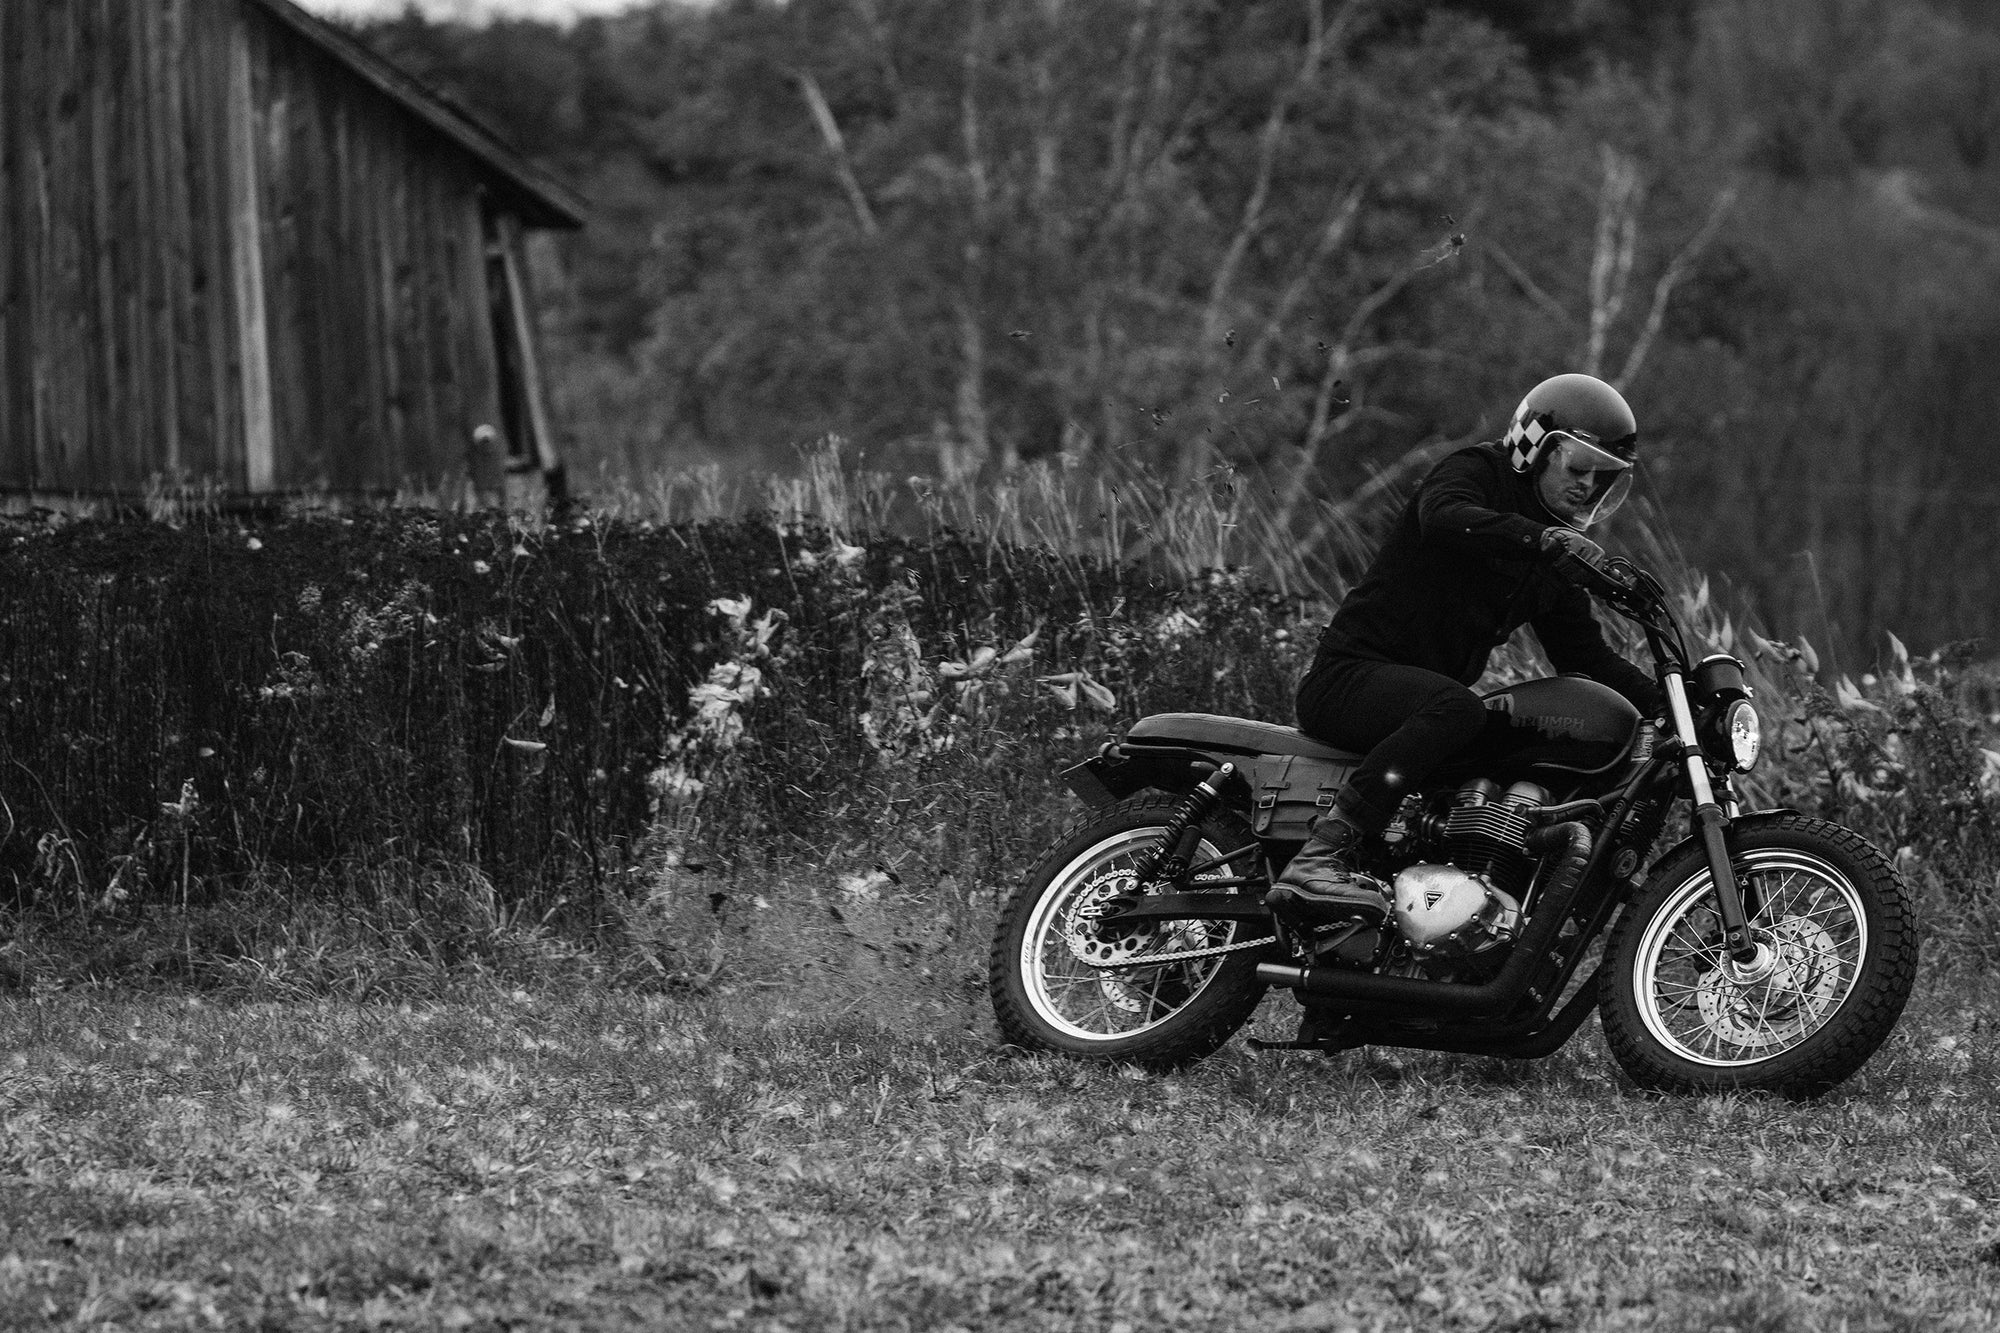 Triumph Motorcycle Parts and Accessories from British Customs